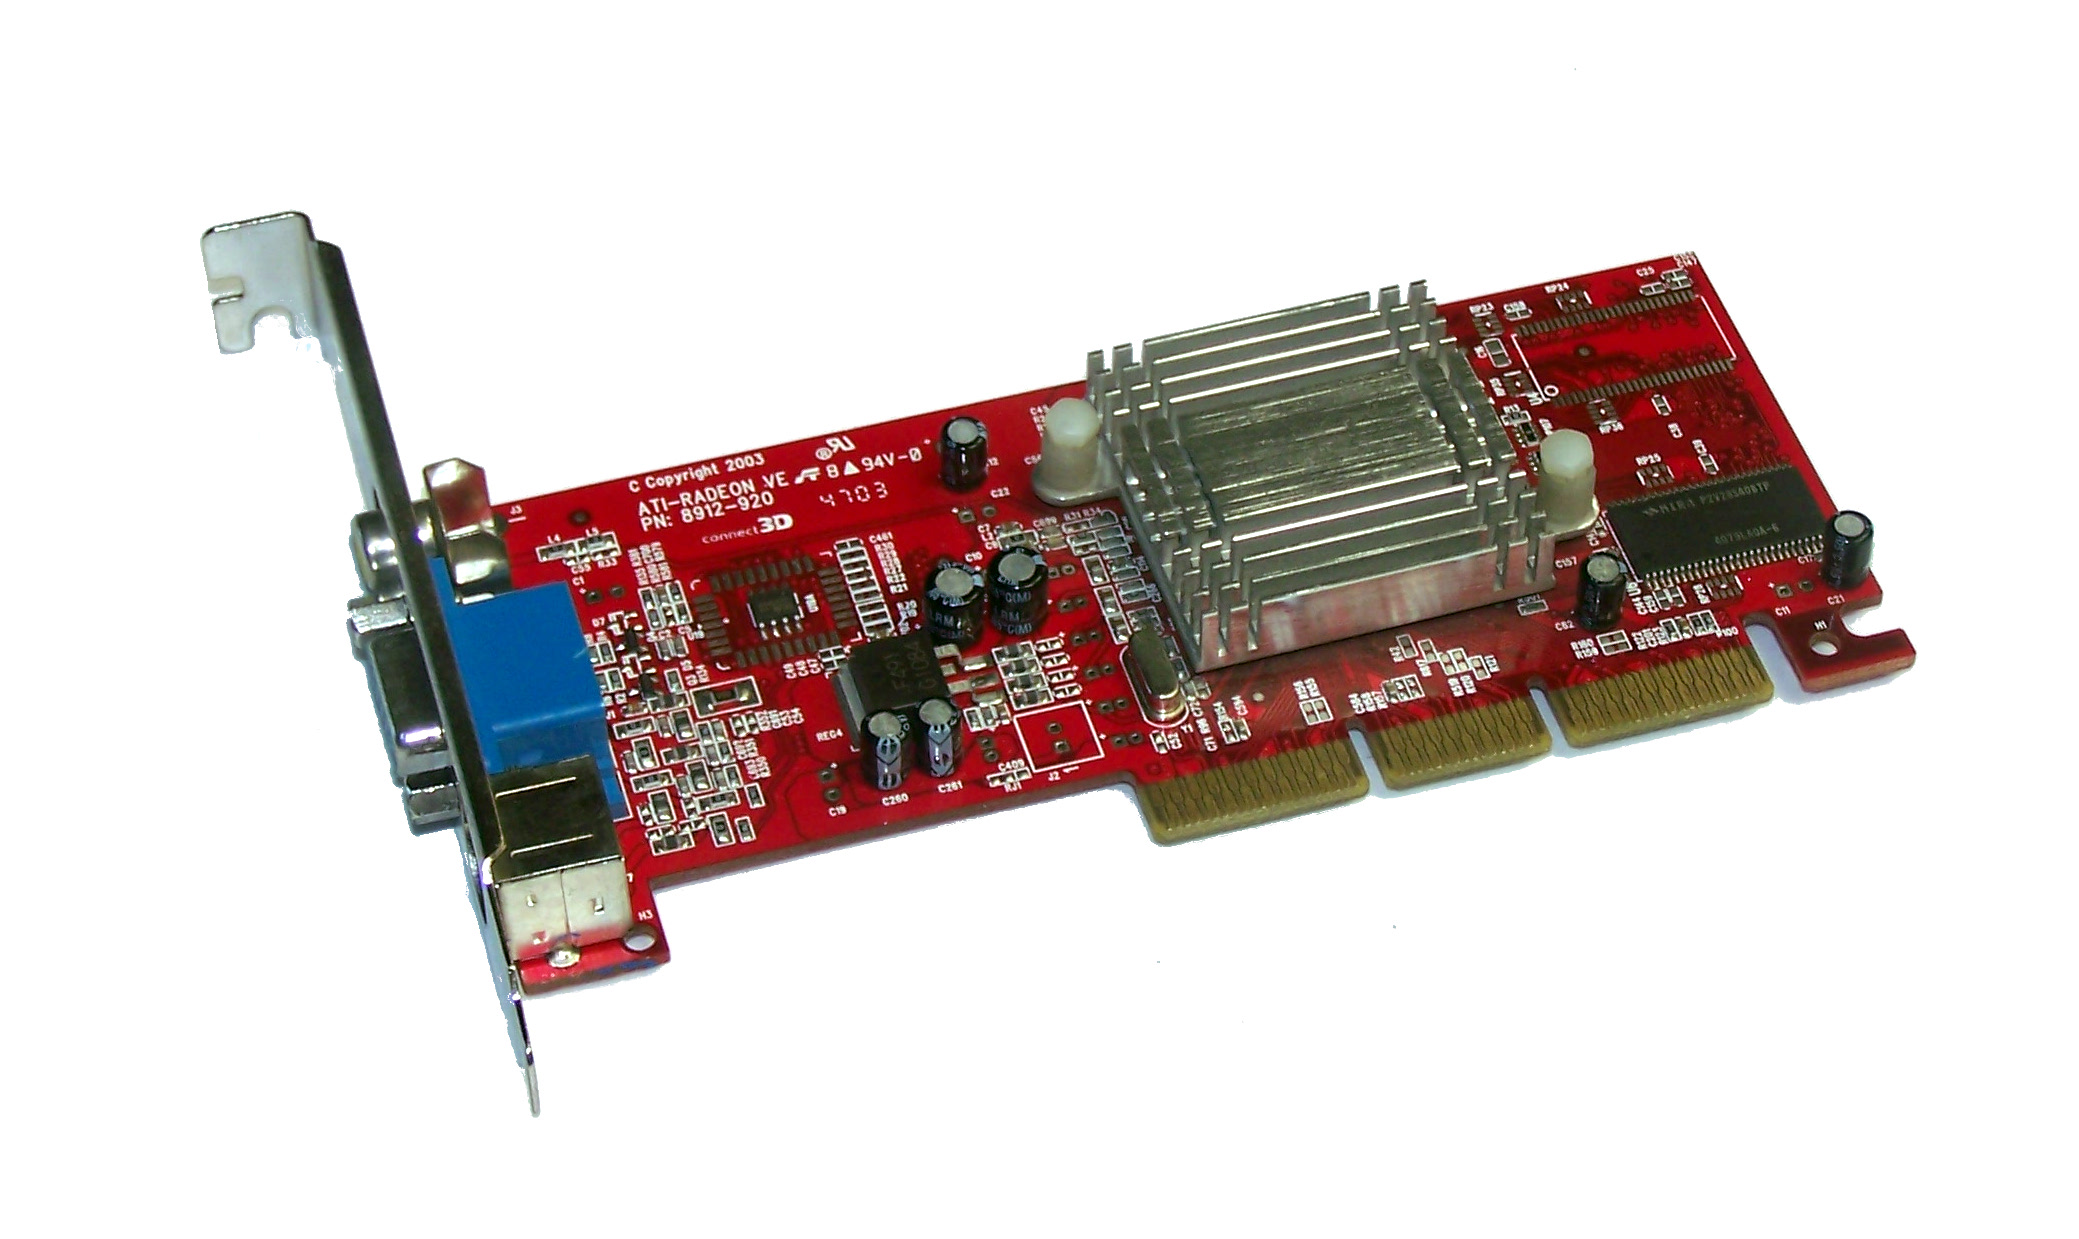 ATI RADEON XPRESS Series R solu - Windows XP